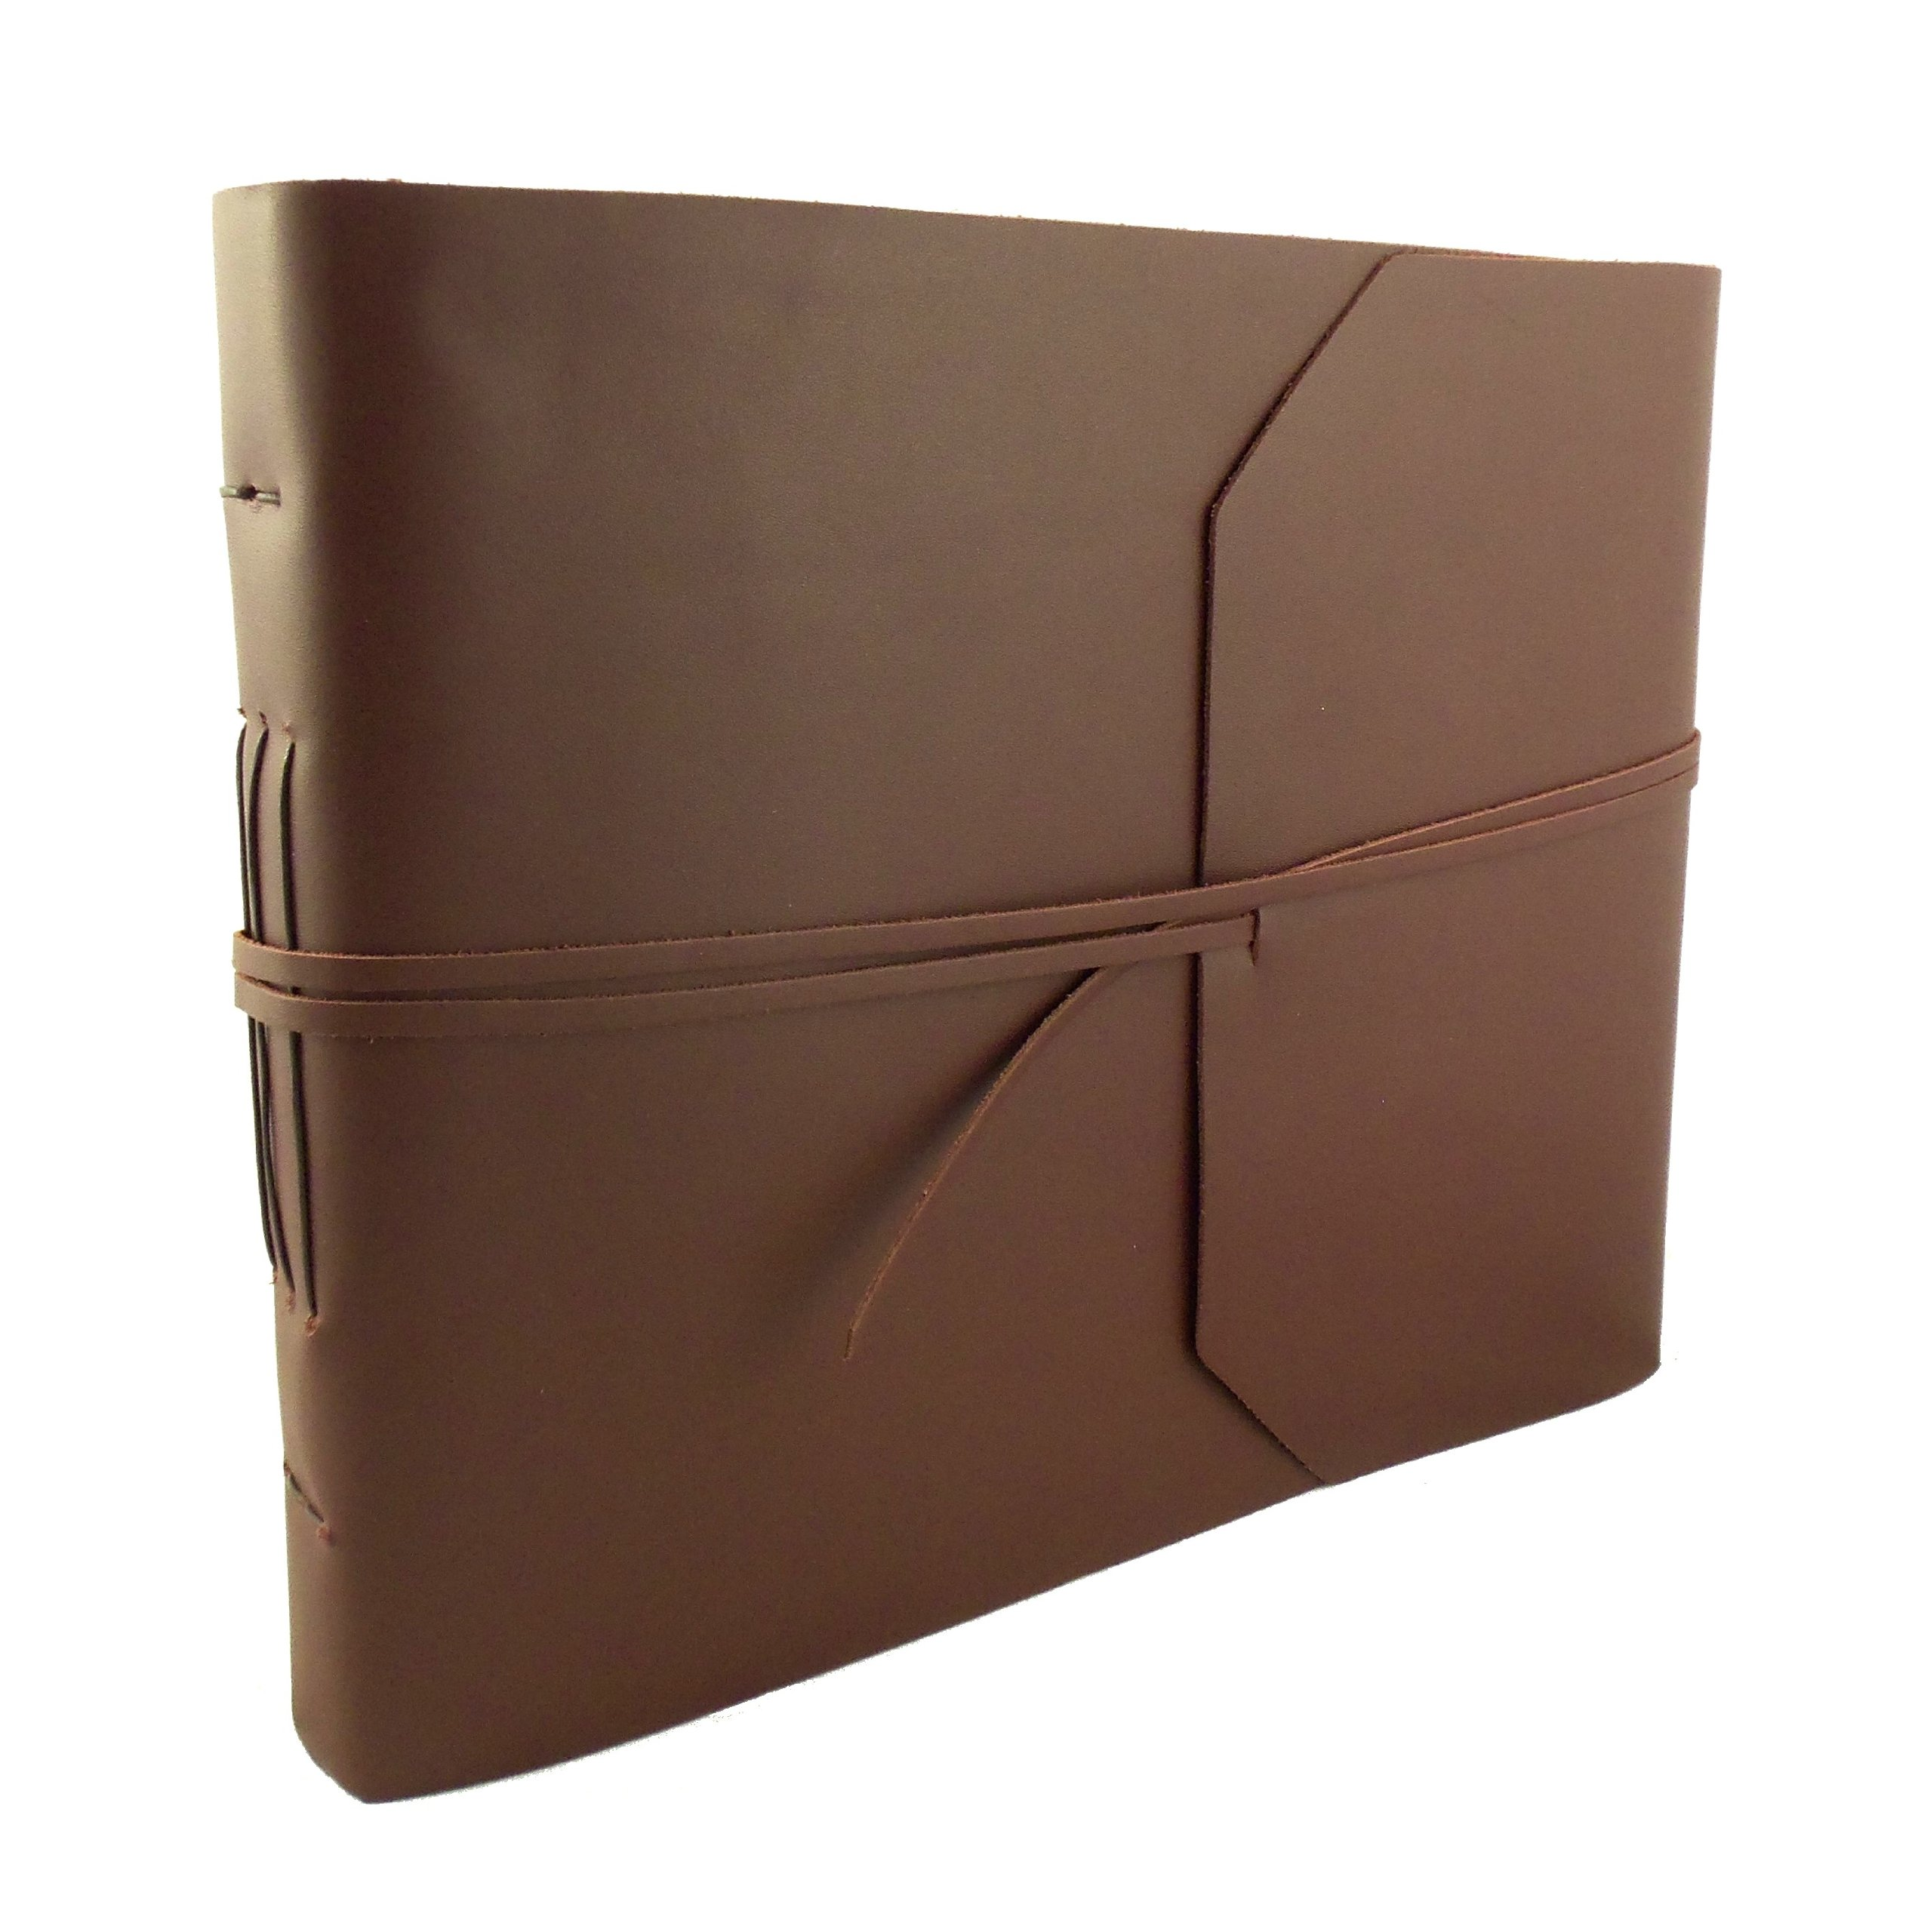 Large Genuine Leather Photo Album with Gift Box - Scrapbook Style Pages - Holds 400 4x6'' or 200 5x7'' Photos